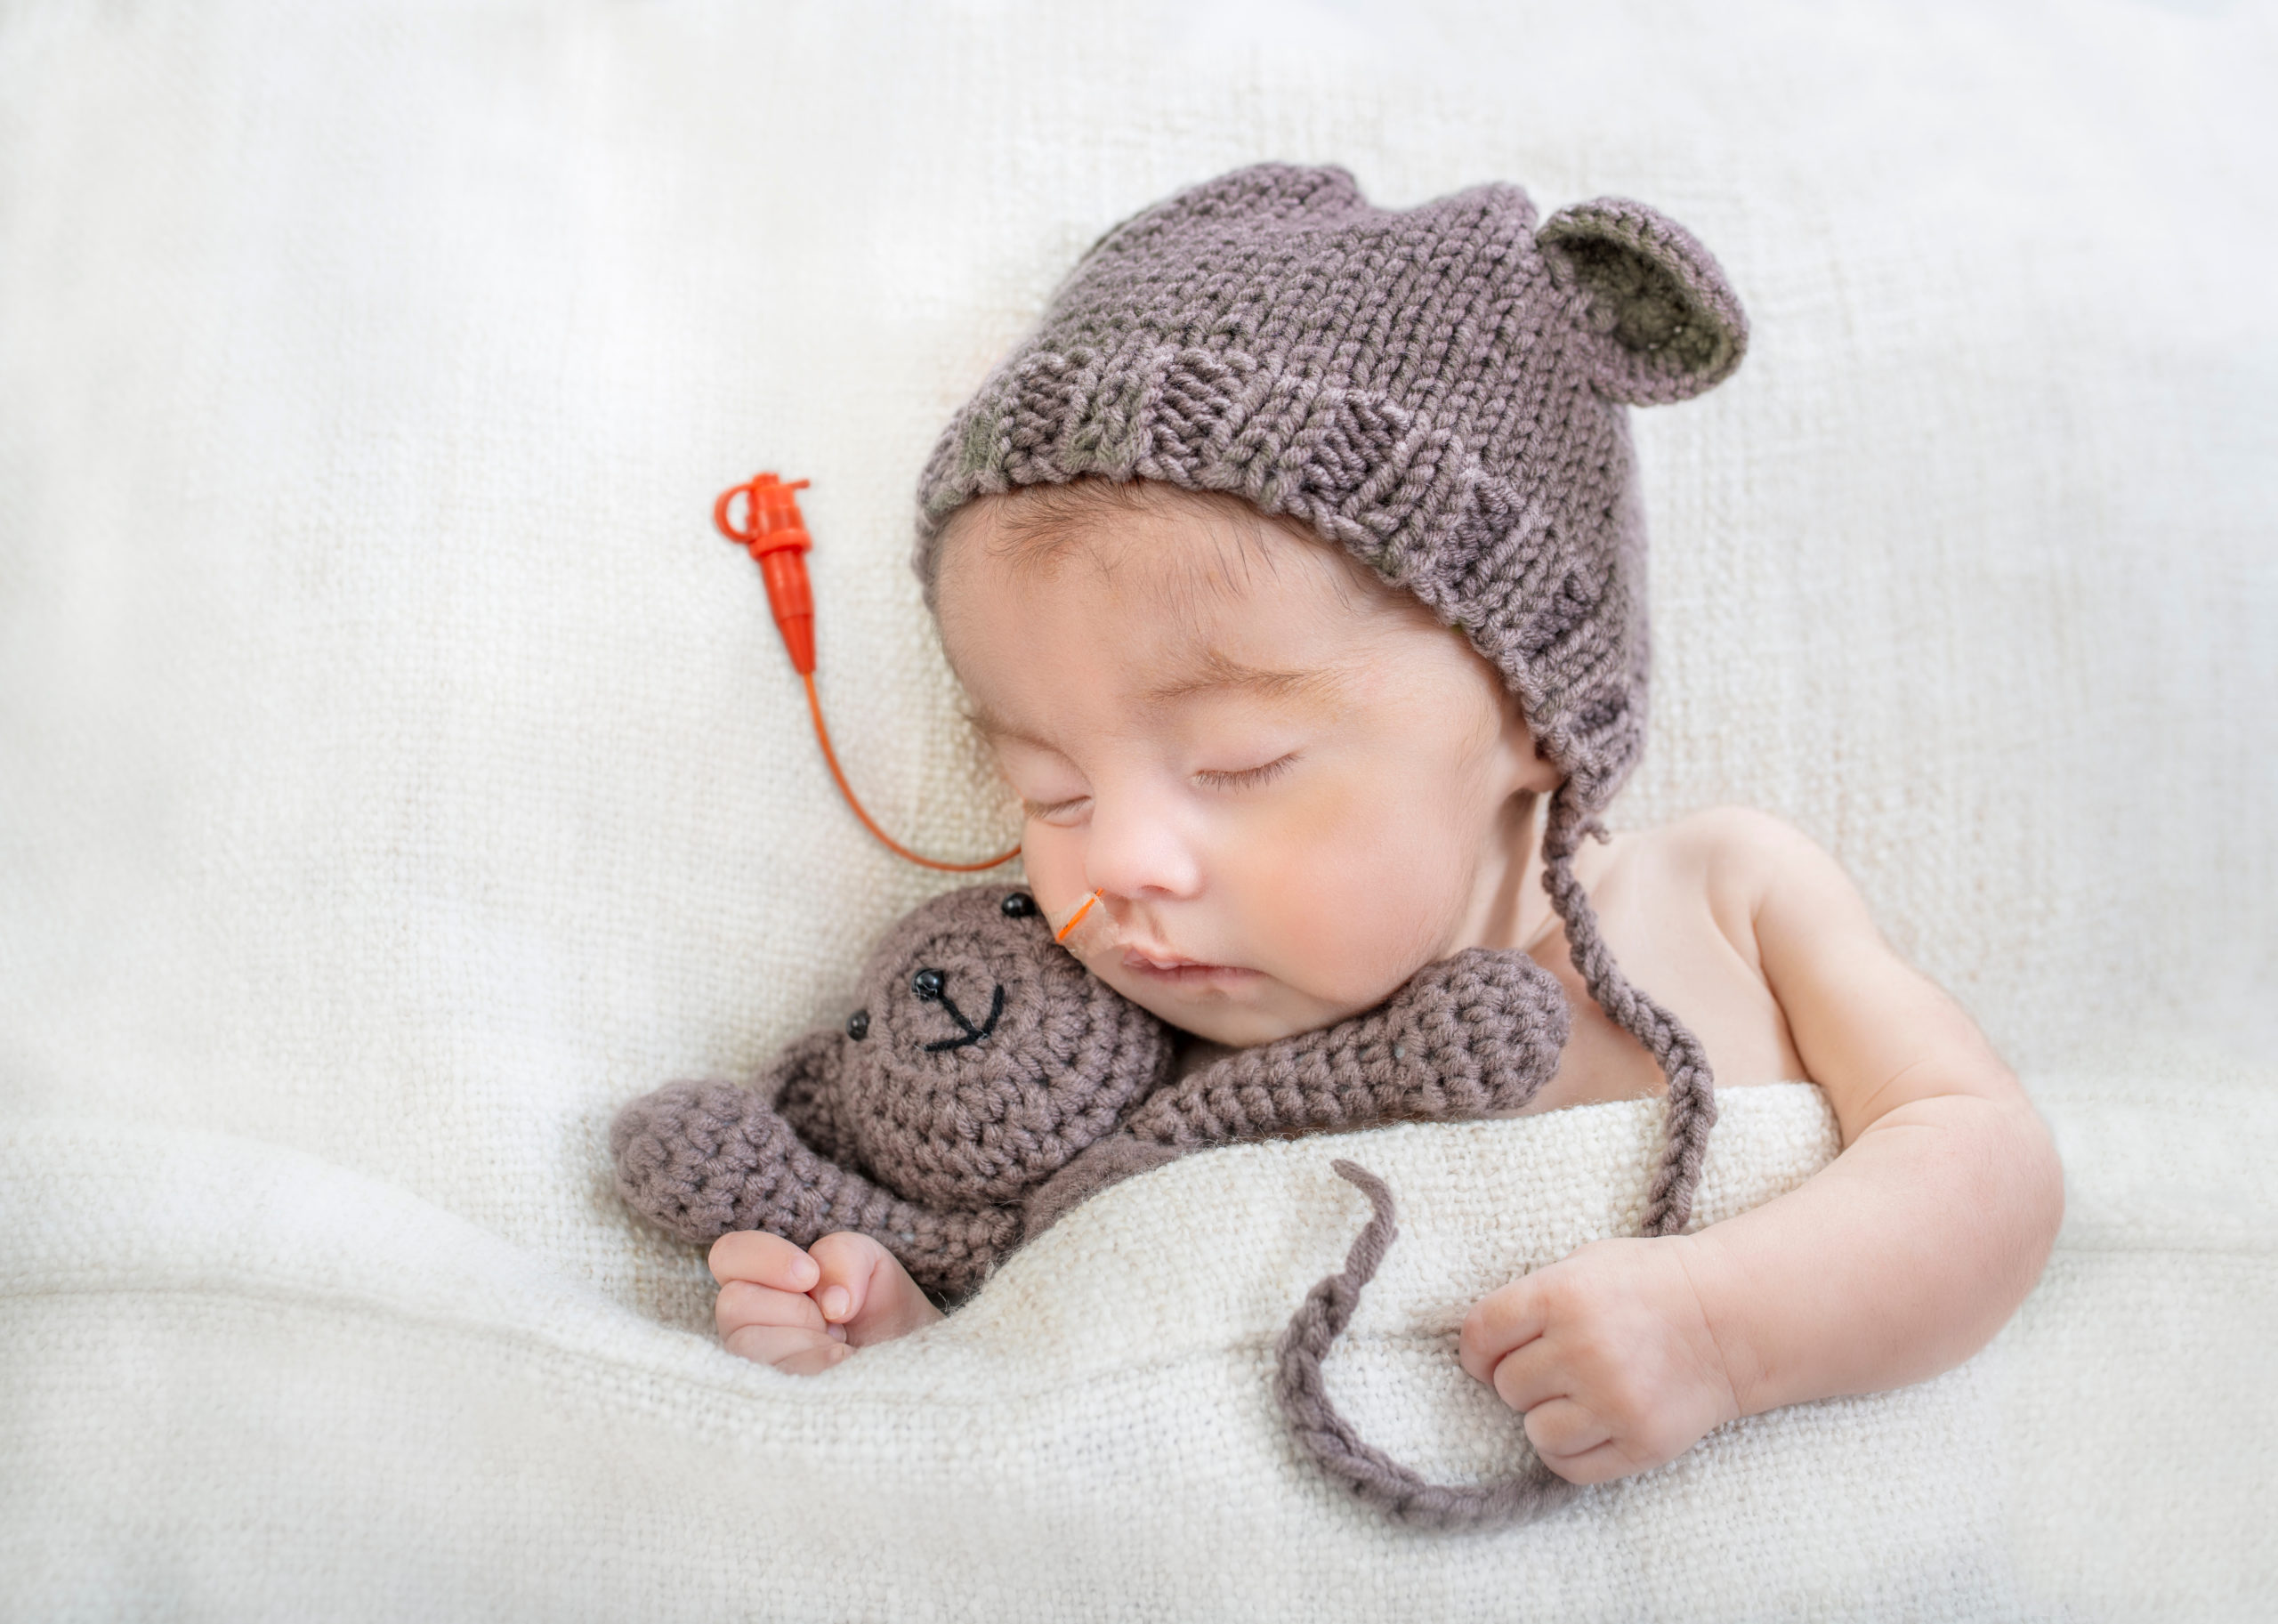 Sleeping,Special,Needs,Infant,With,Feeding,Tube,And,Teddy,Bear